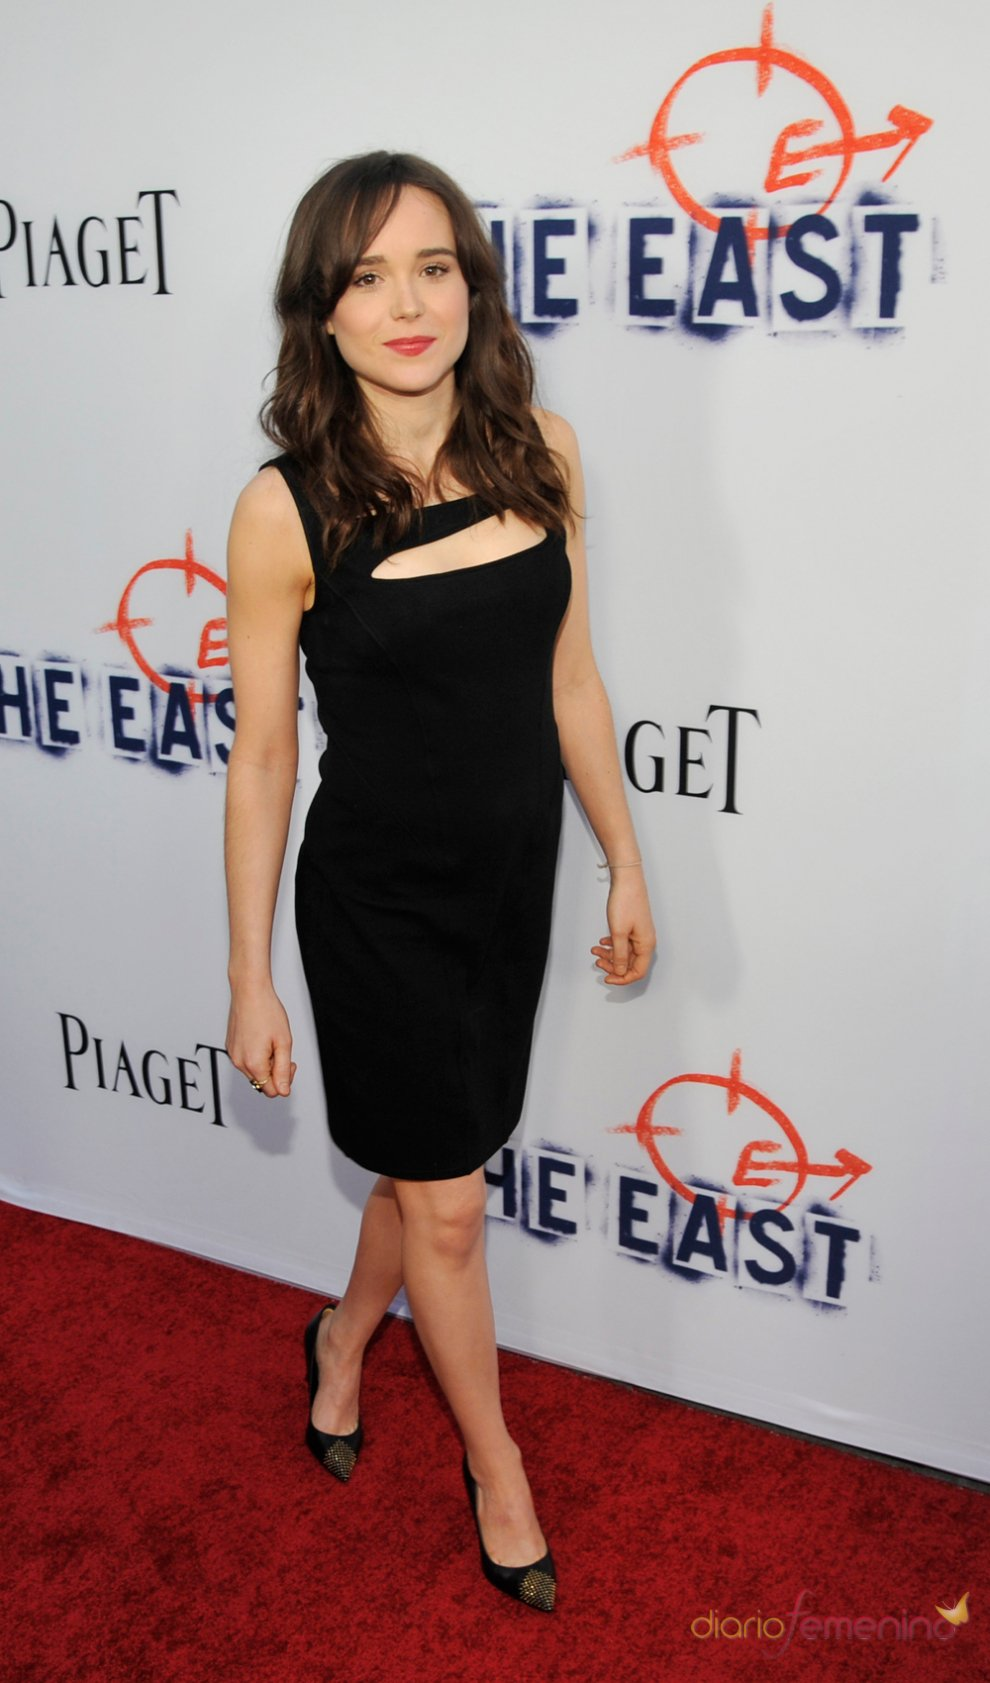 Ellen Page in a black dress - Ellen Page Net Worth, Movies, Biography, Private Life, Pictures and Wallpapers